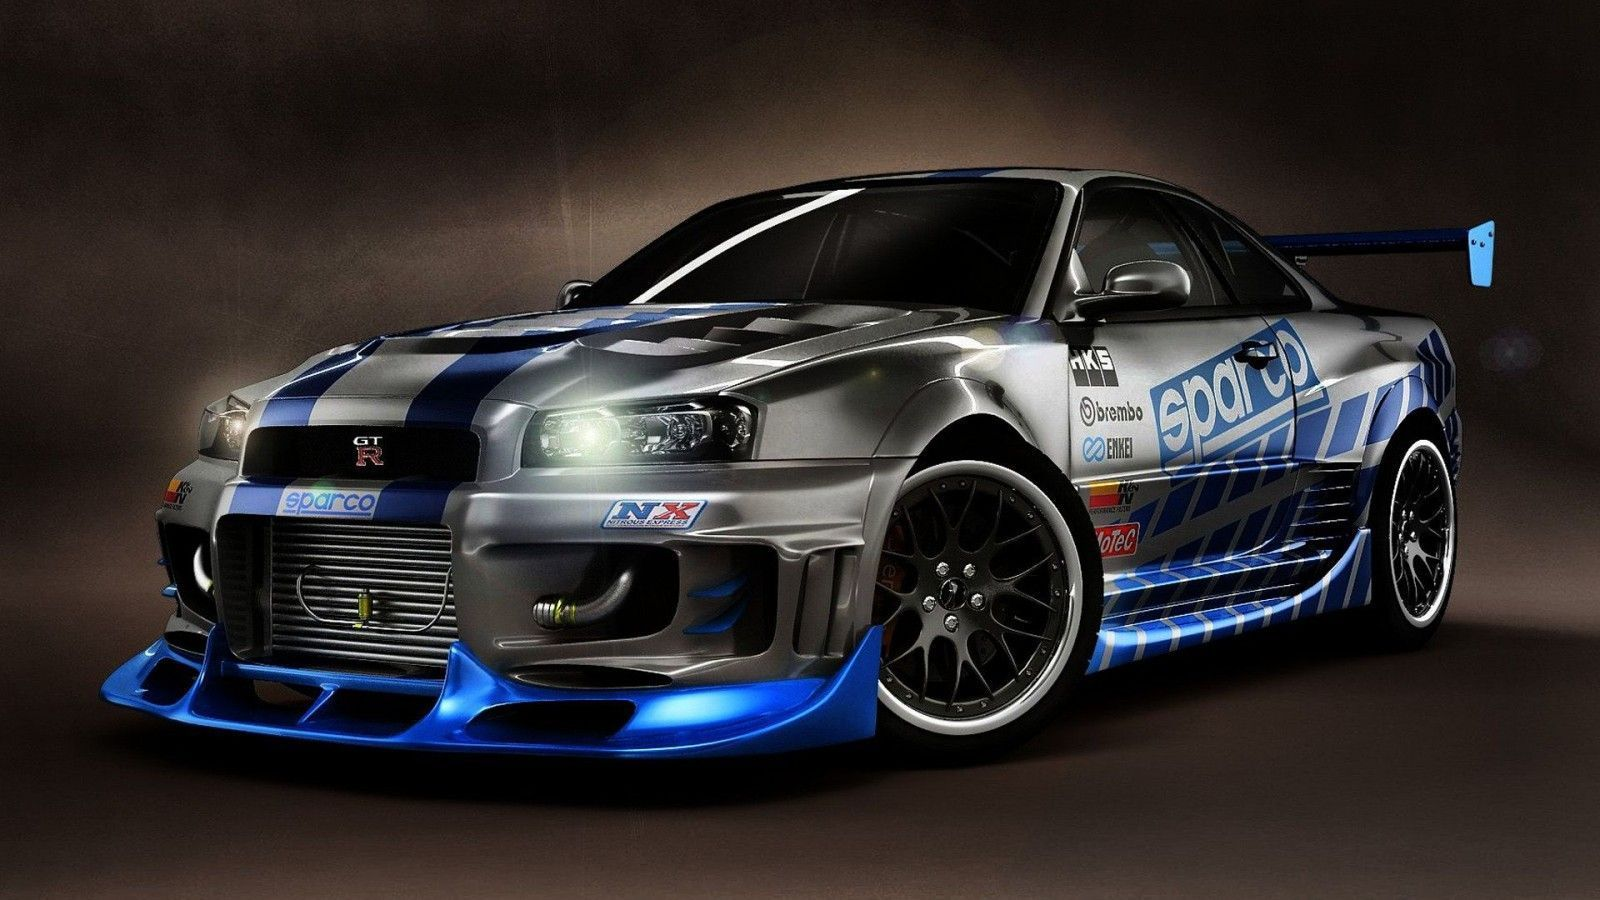 Fast And Furious Cars Wallpapers Wallpaper Cave Nissan Skyline Nissan Gtr Skyline Gtr Car